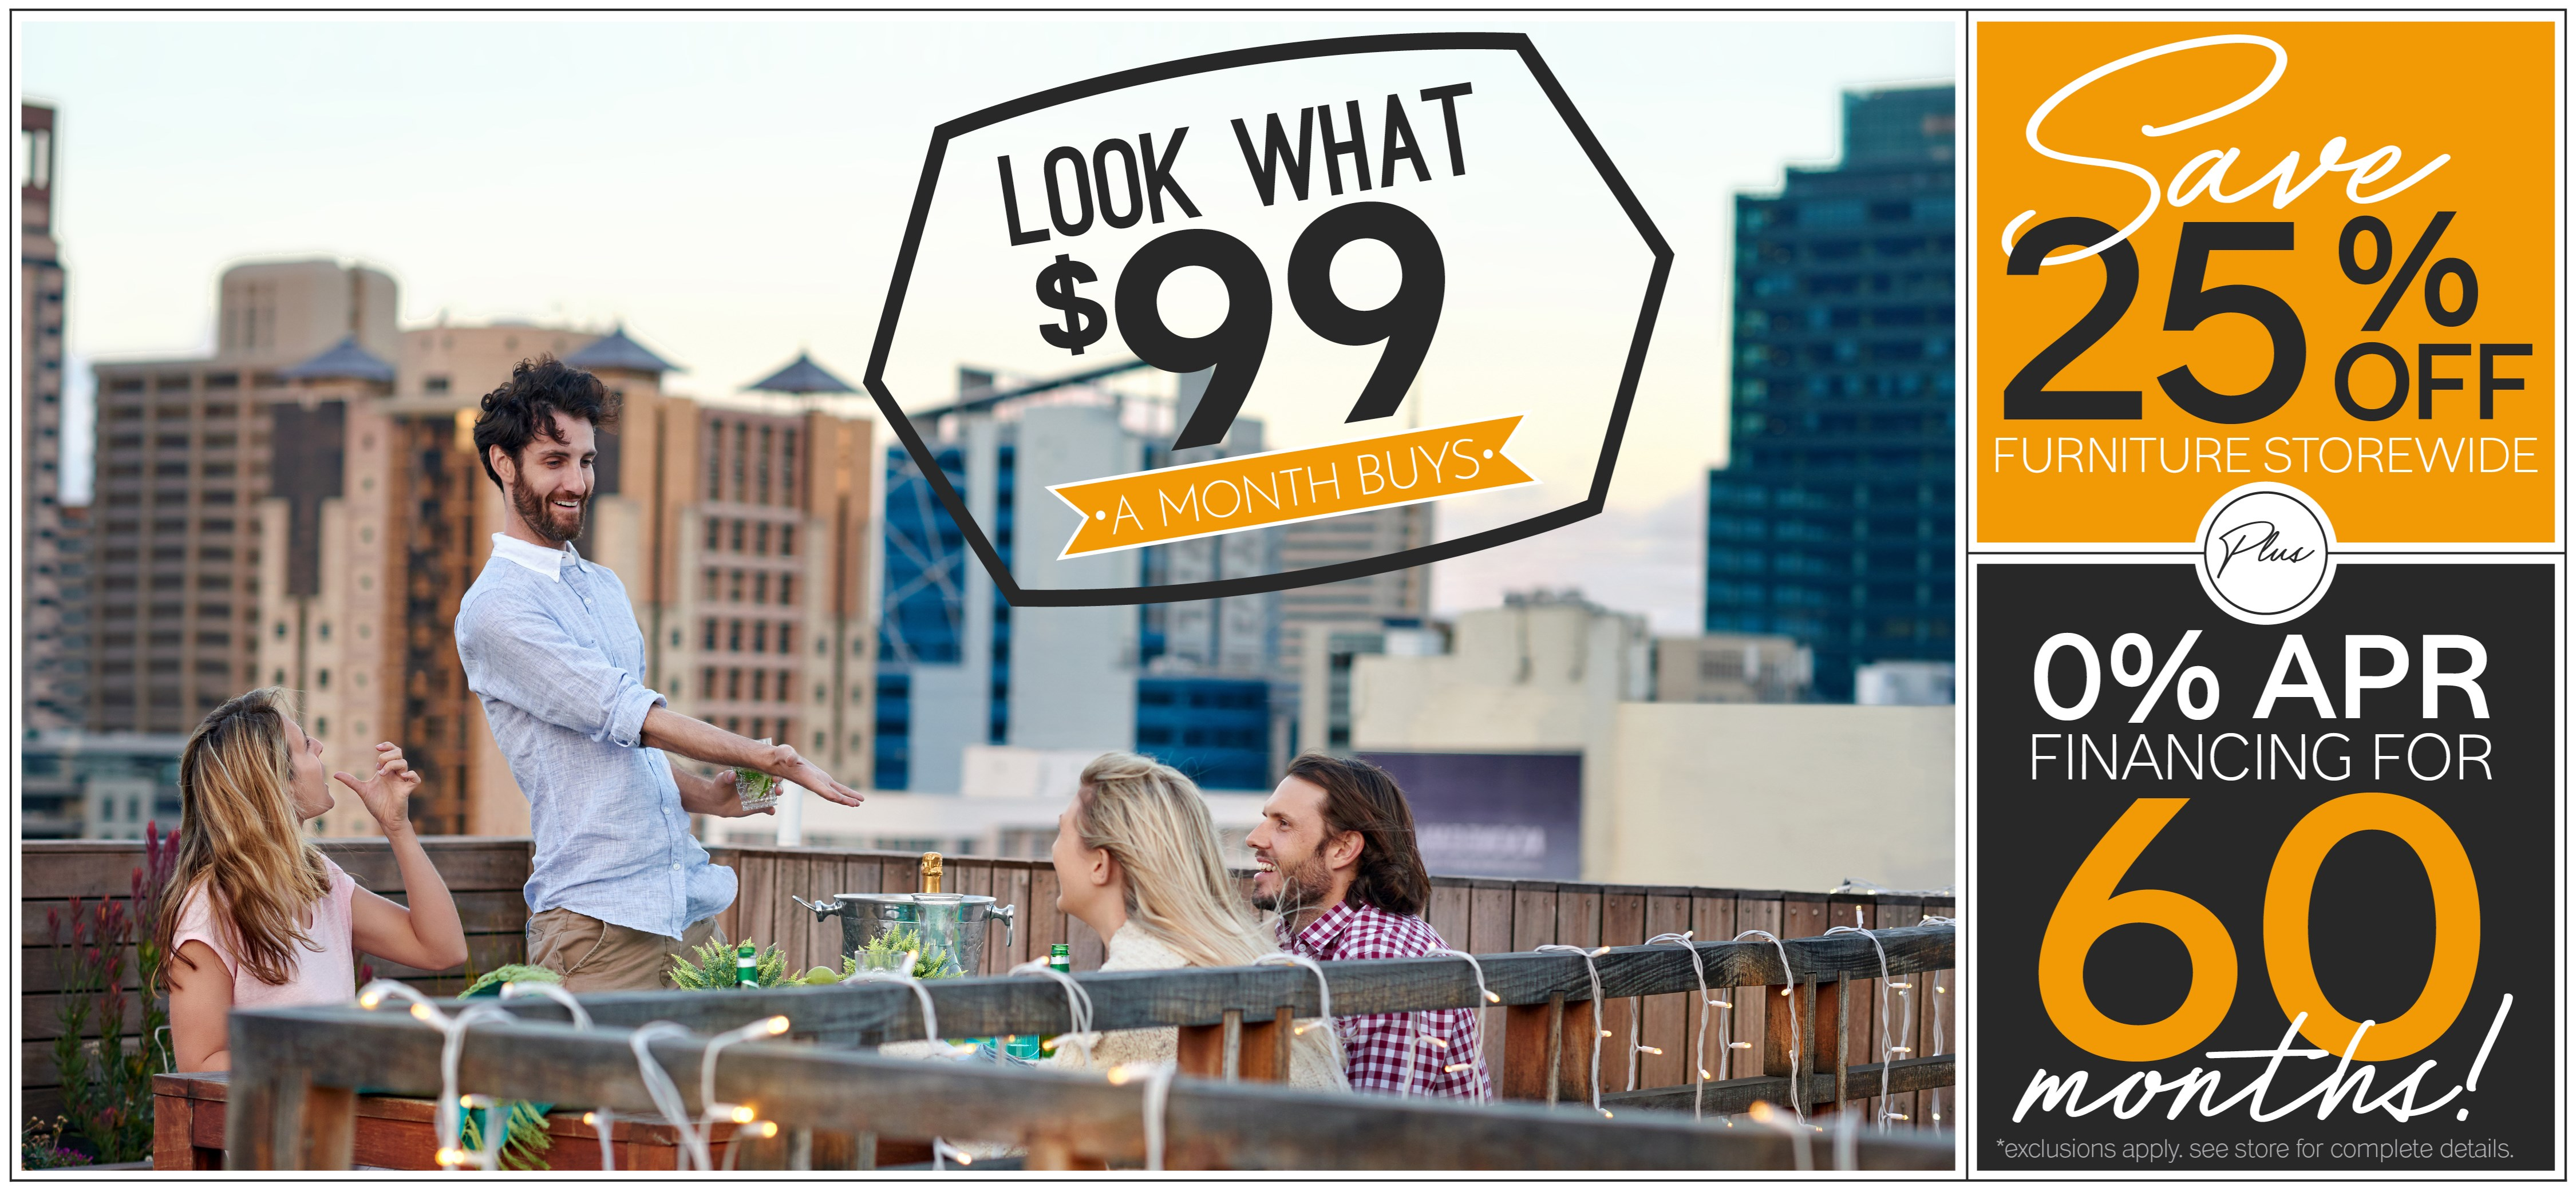 Furniture & ApplianceMart Look What $99 A Month Buys Sale